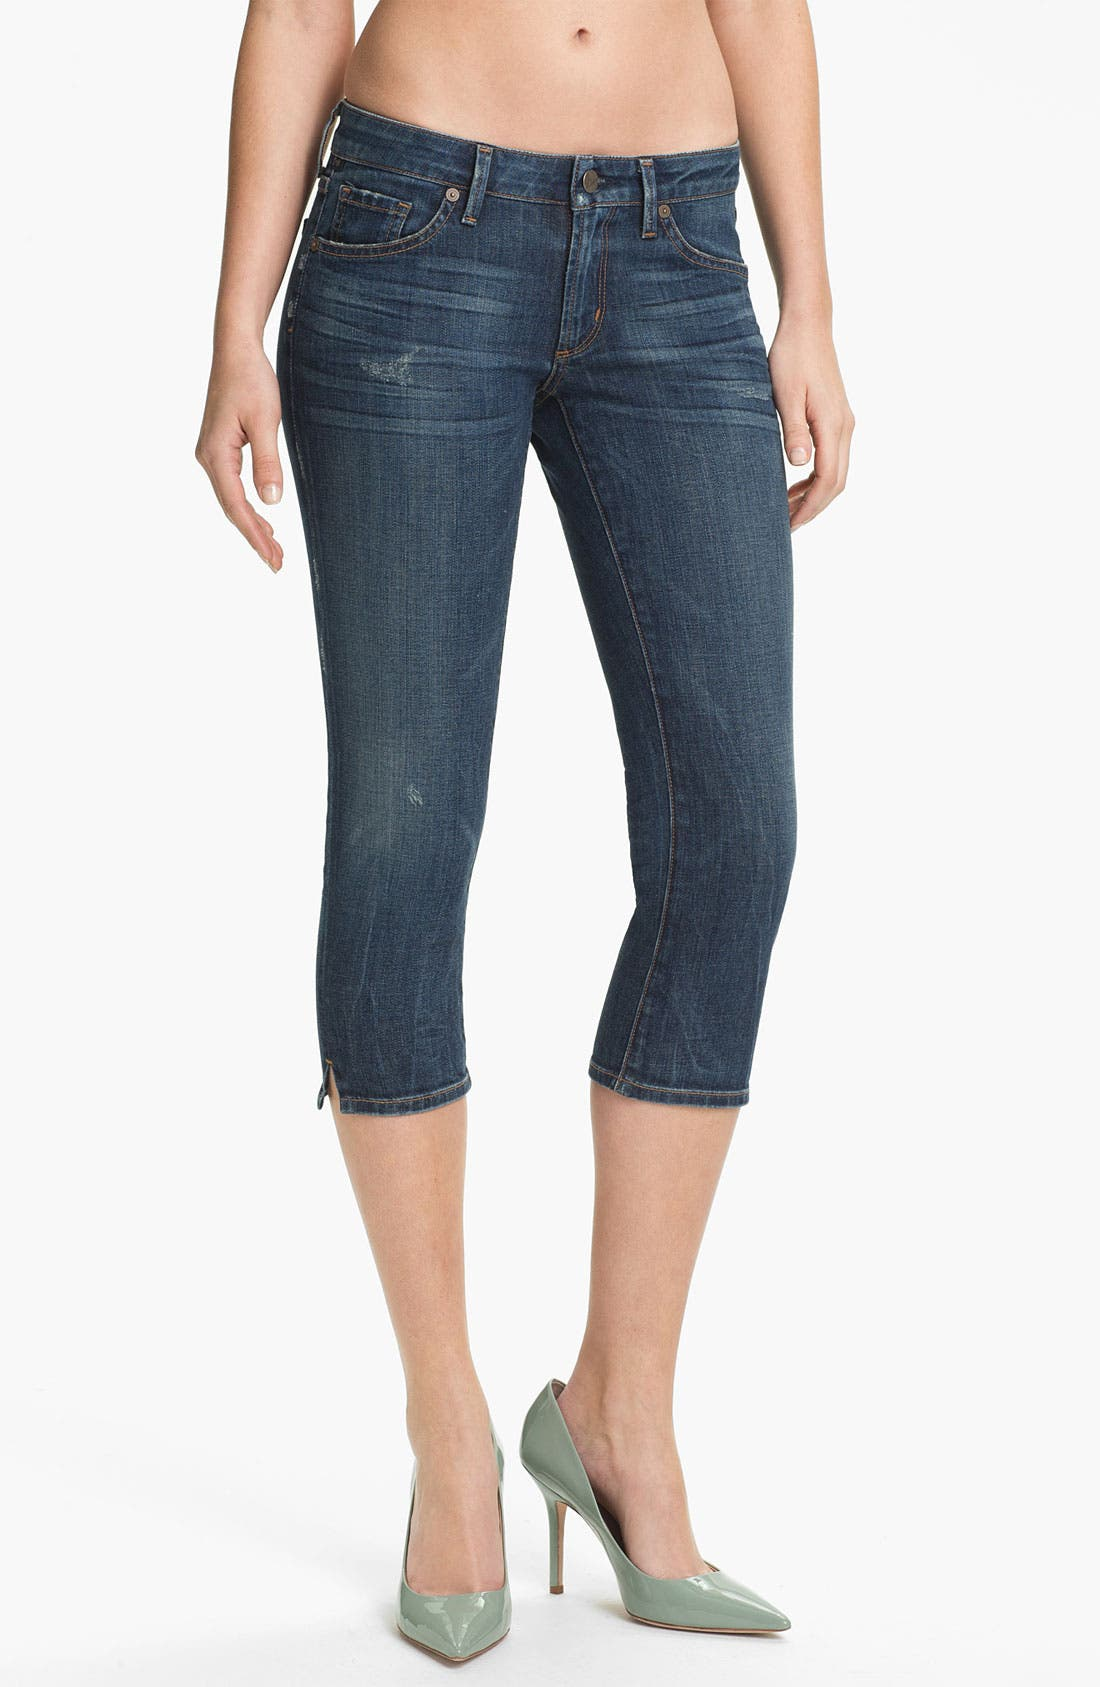 Alternate Image 1 Selected - Citizens of Humanity 'Racer' Crop Skinny Jeans (Slash)